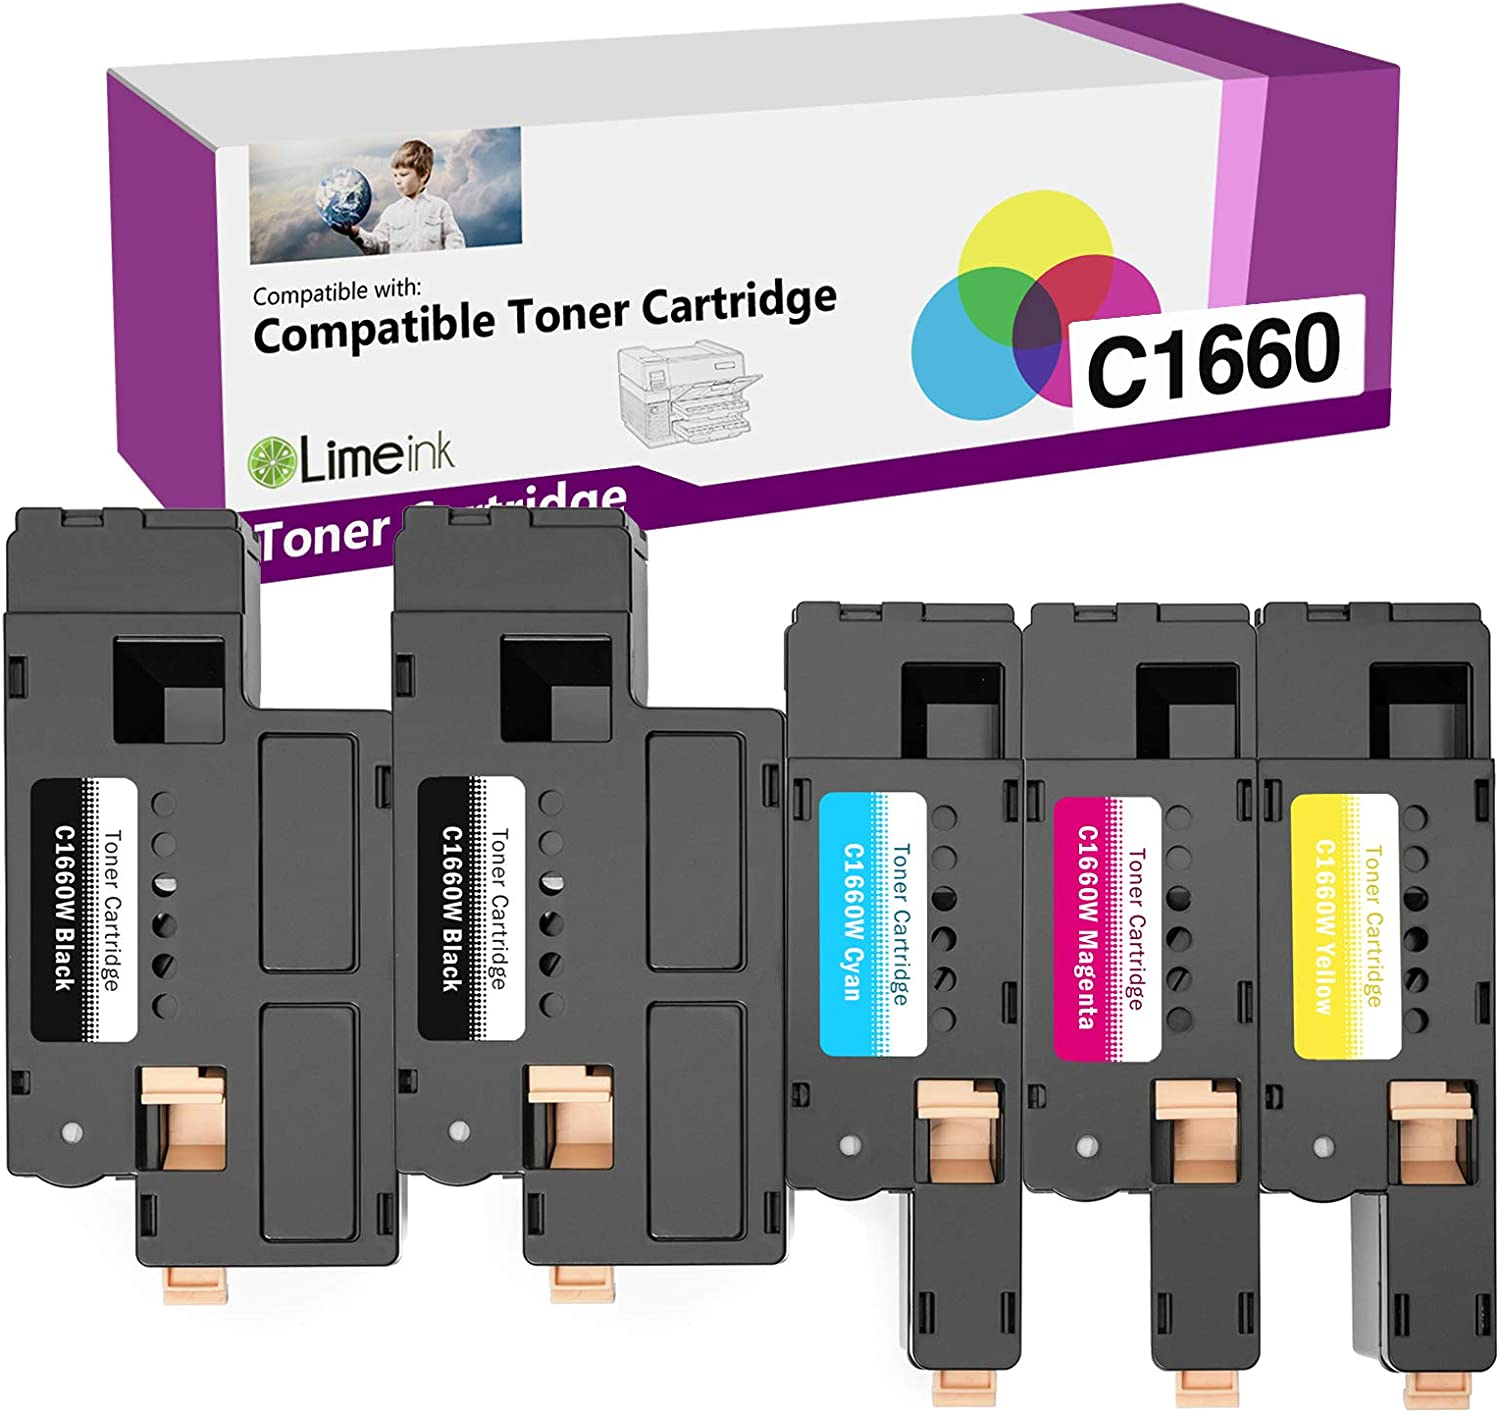 Limeink 5 Pack Compatible High Yield Laser Toner Cartridges Replacement for Dell C1660 4G9HP (2 Black, 1 Cyan, 1 Magenta, 1 Yellow) Compatible with C1660 C1660W C1660cnw 1660 1660W, 1660cnw Printers